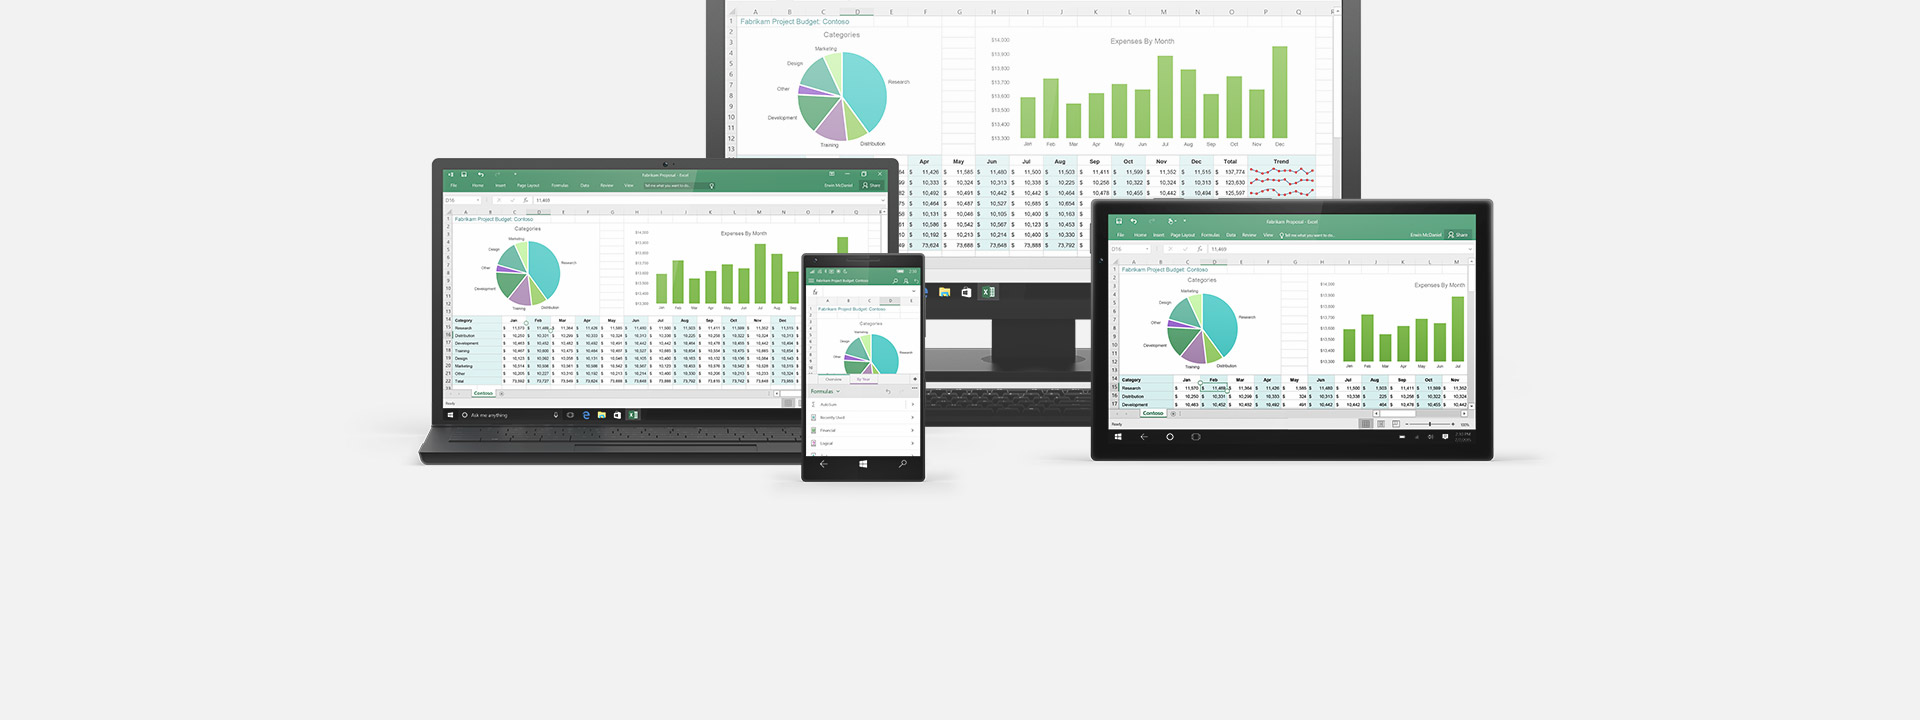 Multiple devices, learn about Office 365